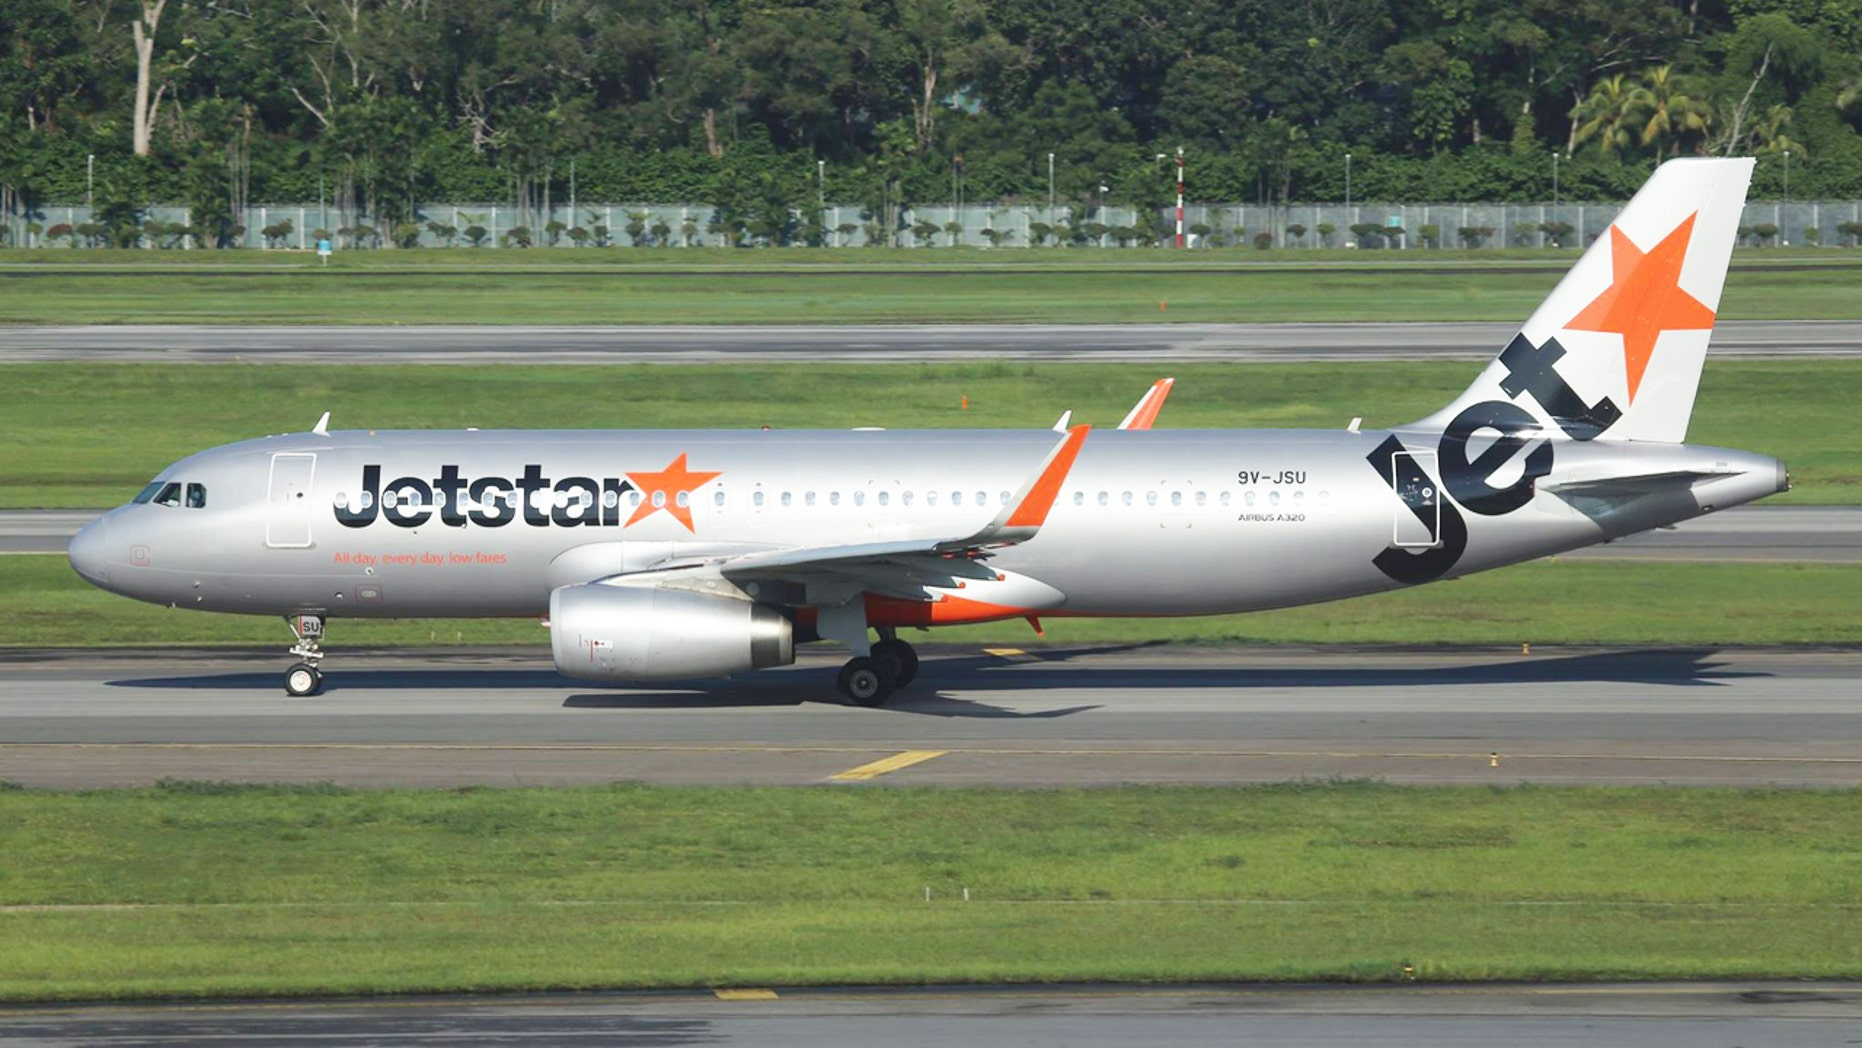 A mother celebrated the birth of her healthy newborn aboard a Jetstar Asia plane by naming her baby after the airline.